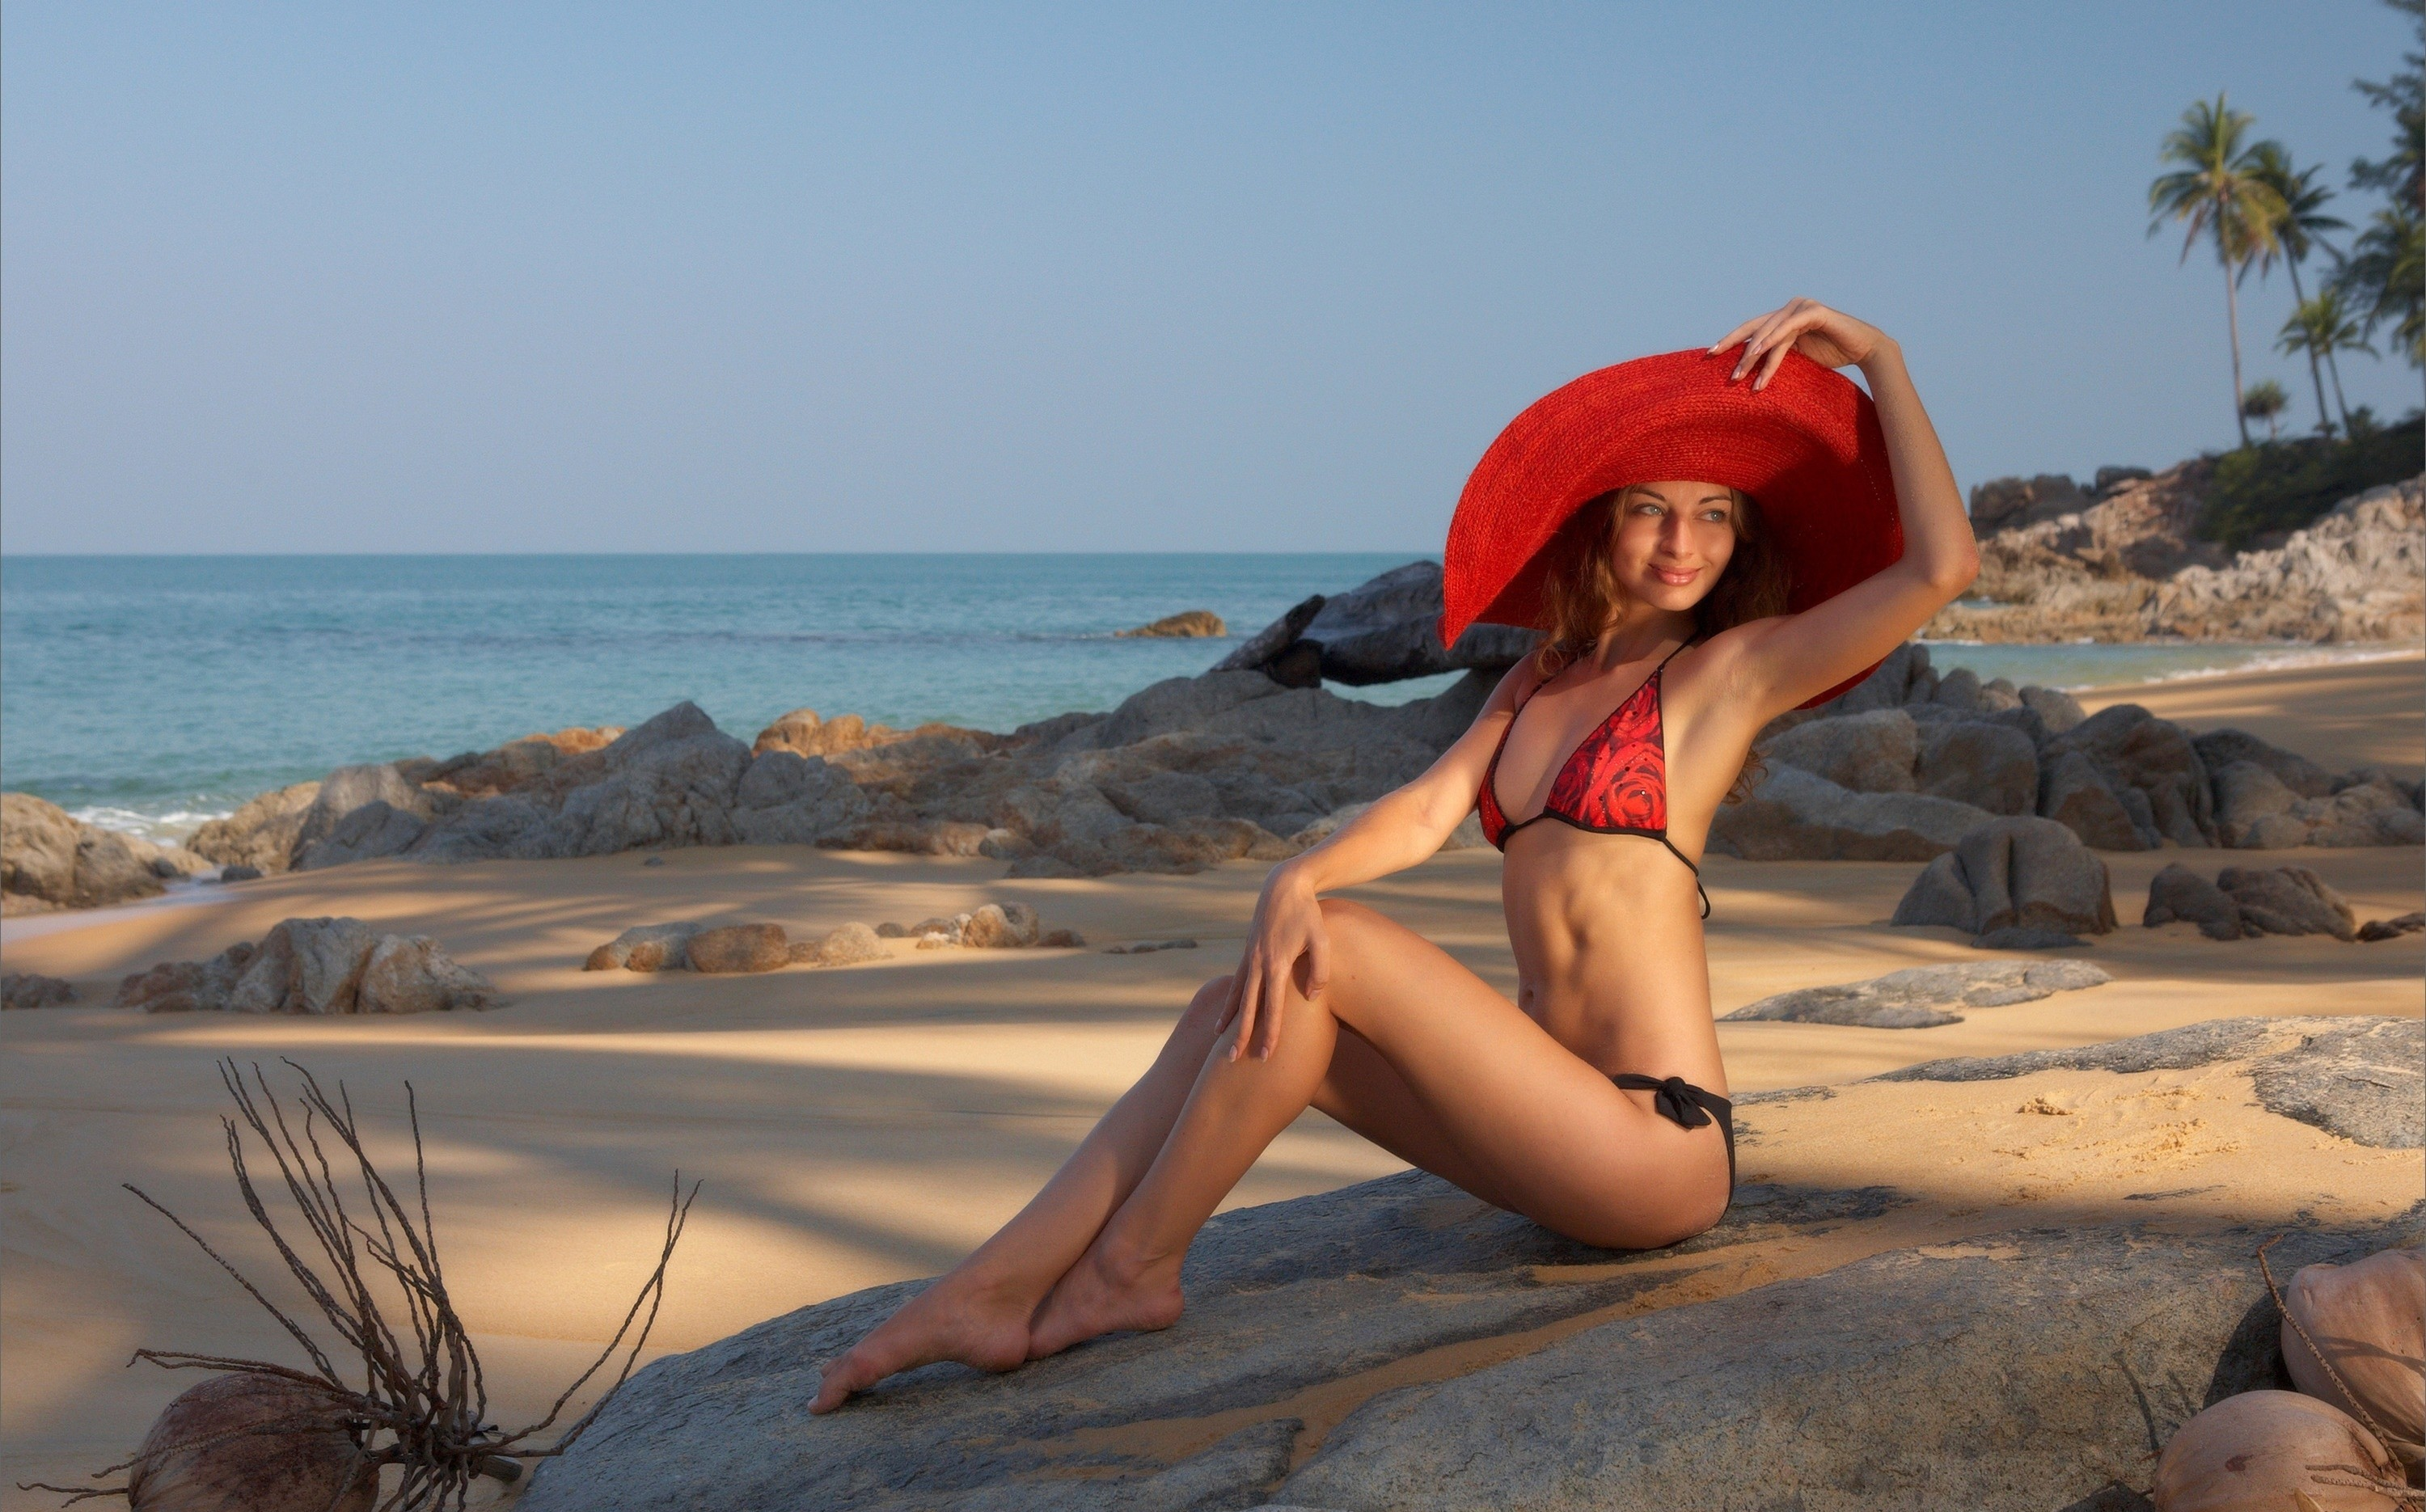 Summertime full hd wallpaper and background 3000x1870 id 526157 - Hd bikini wallpapers for pc ...